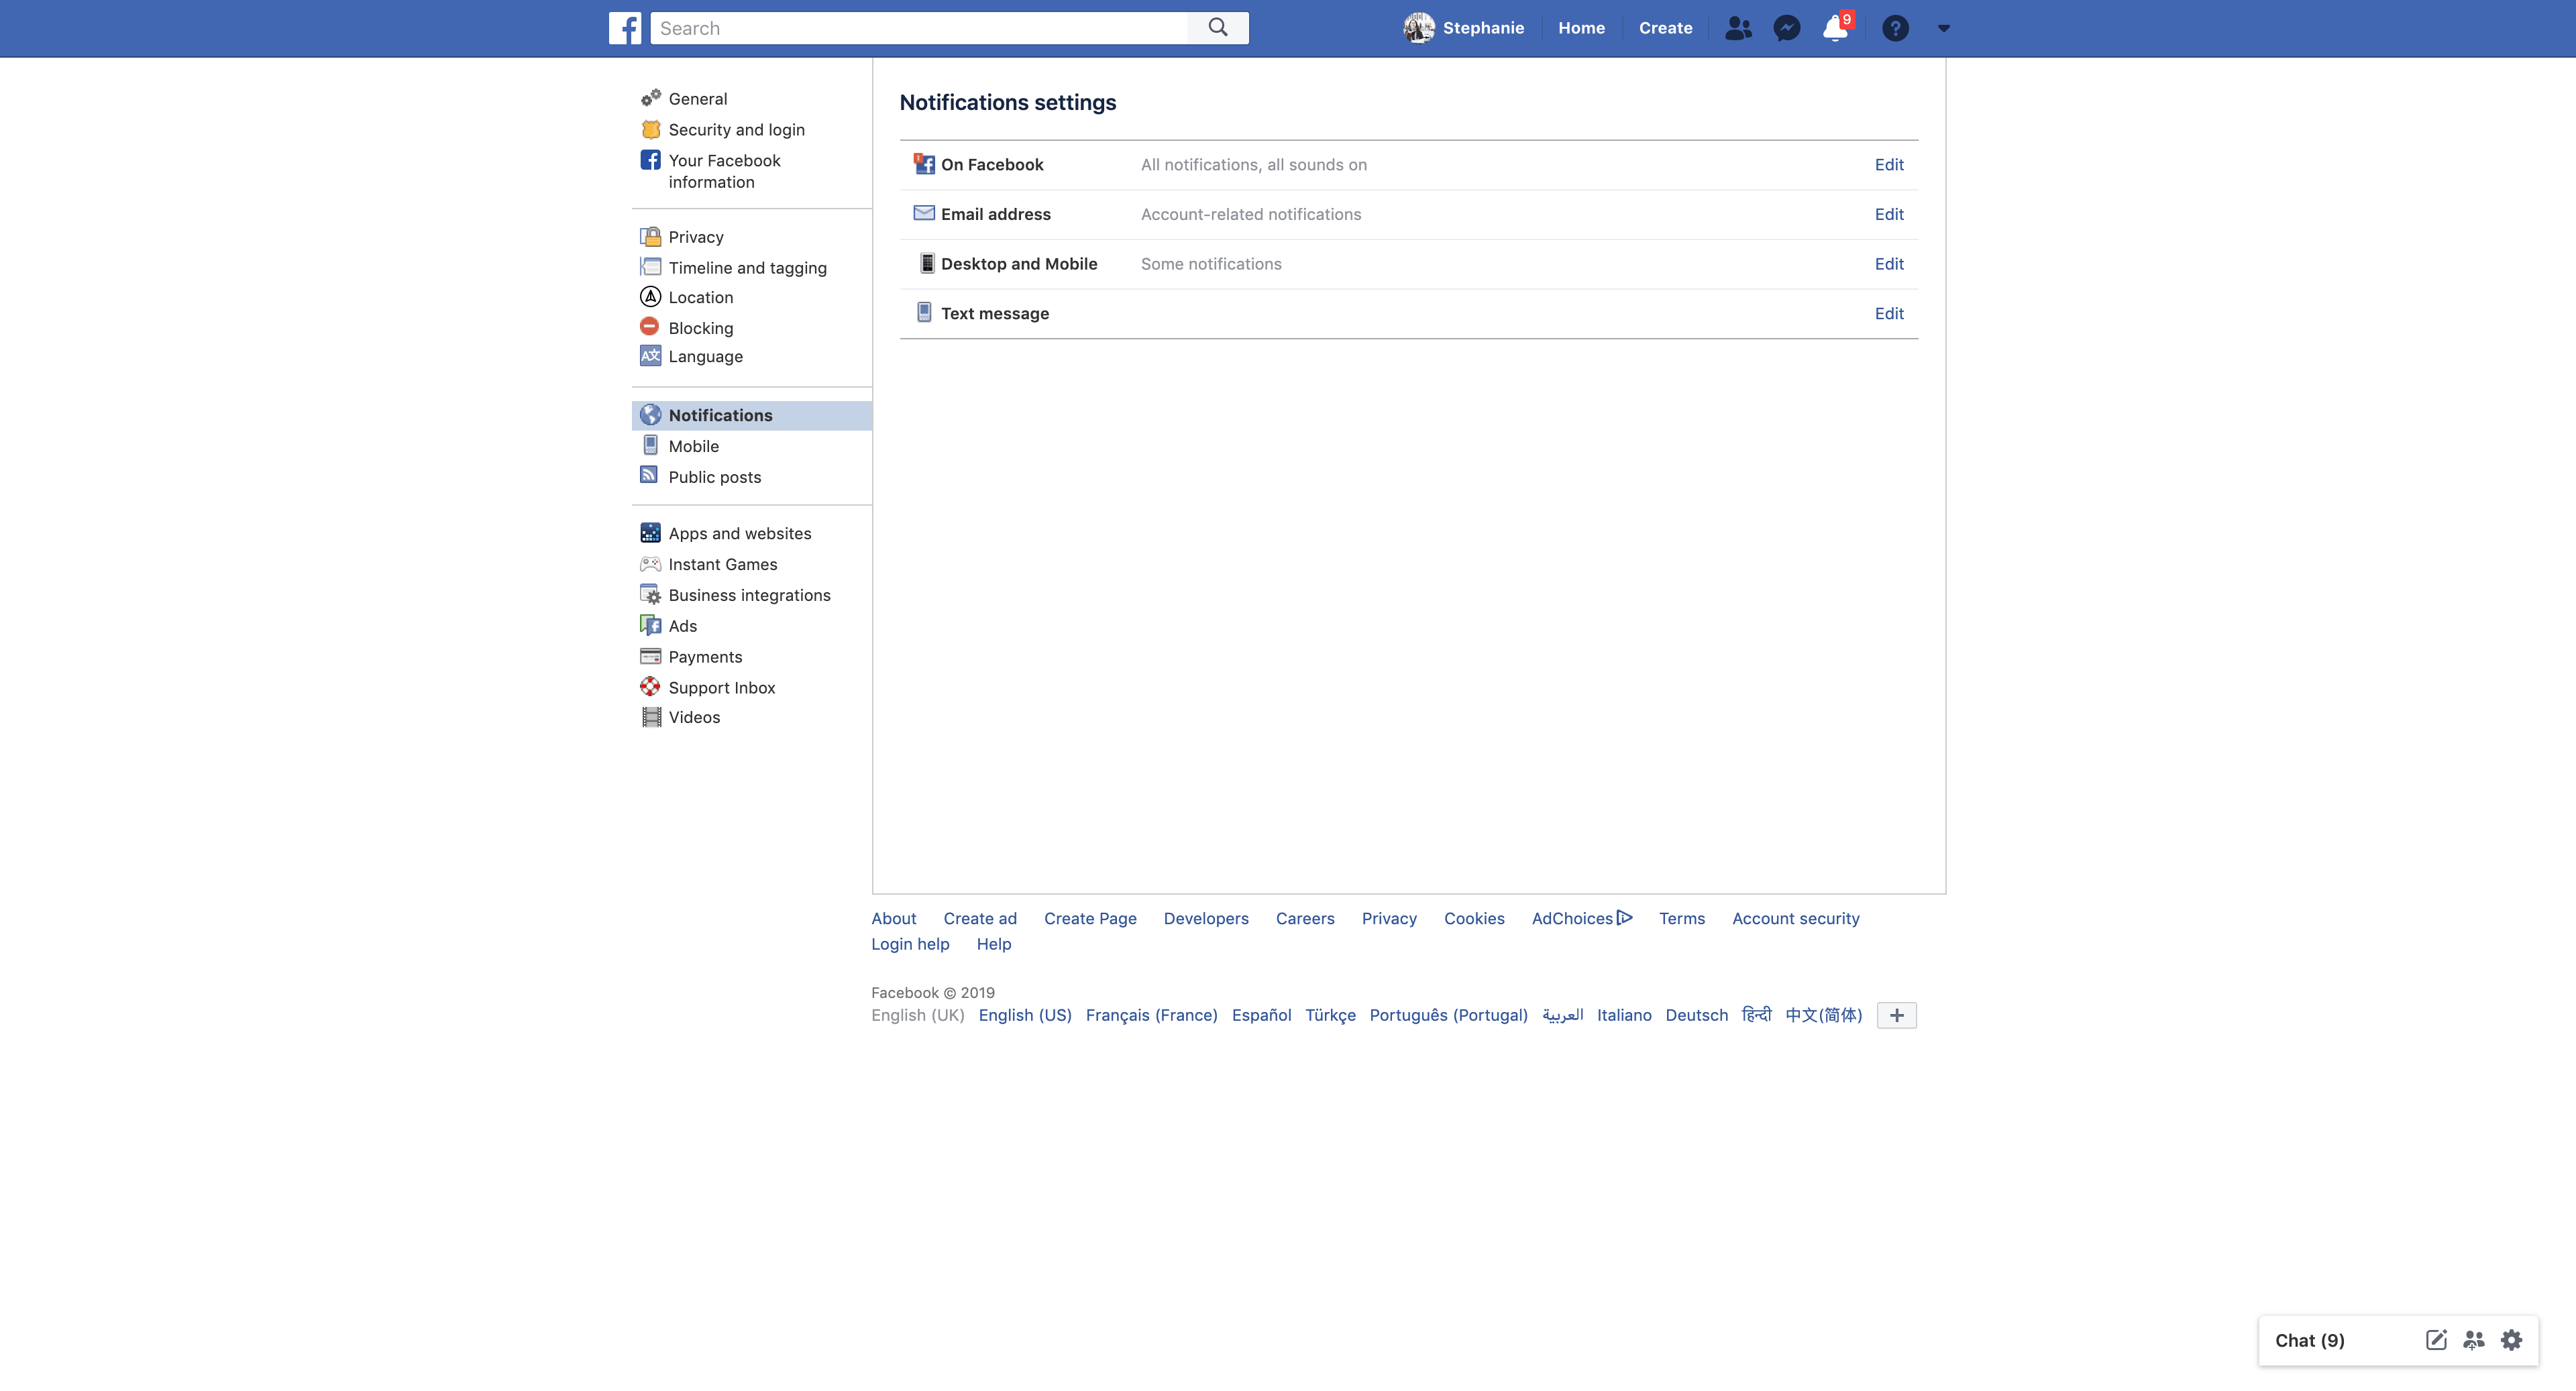 Notifications Settings by Facebook